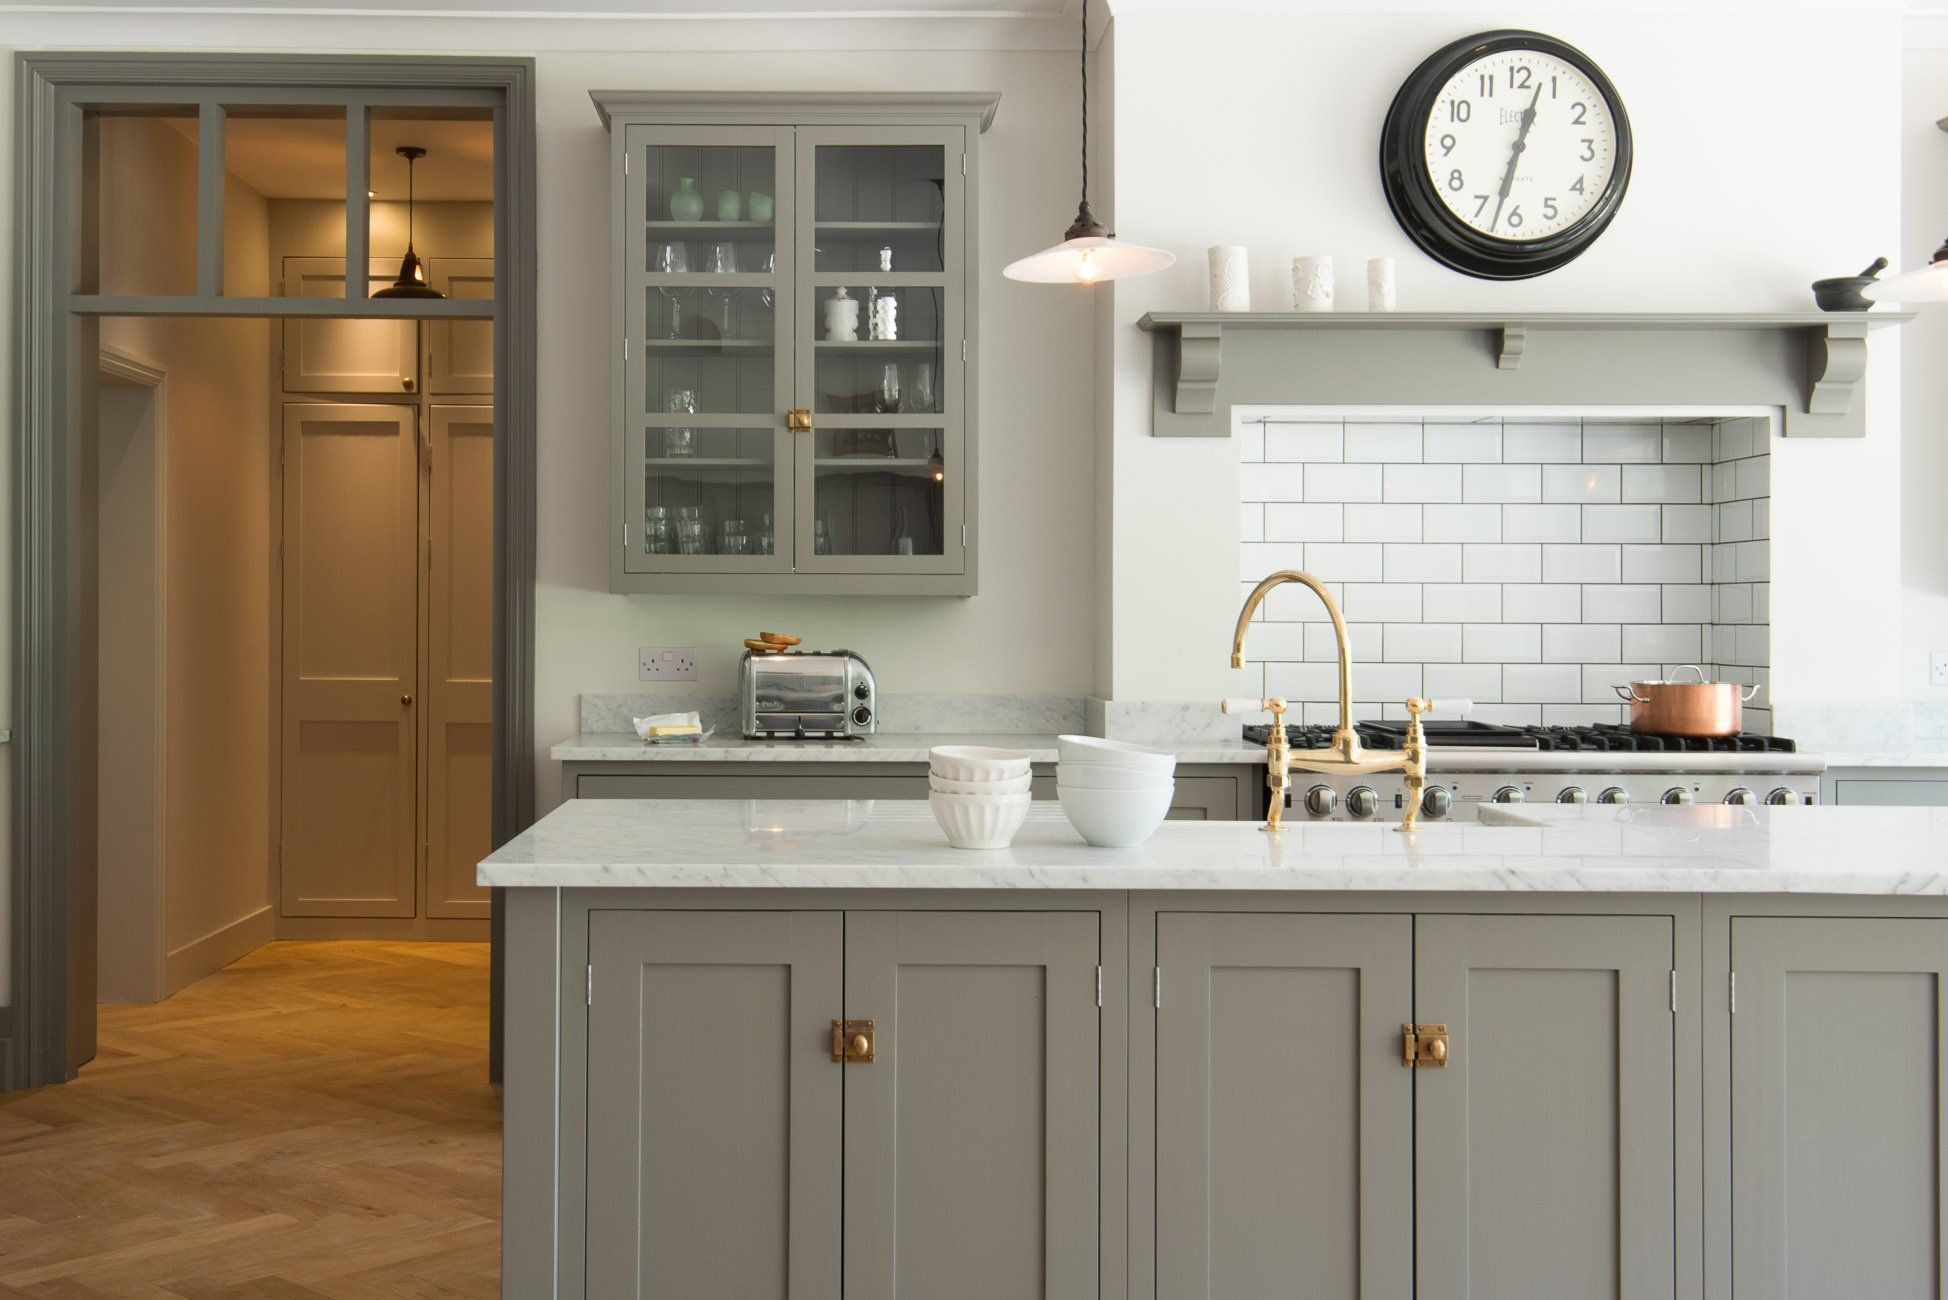 Another Colour Choice Instead Of Blue Warm Grey - Warm gray kitchen cabinets